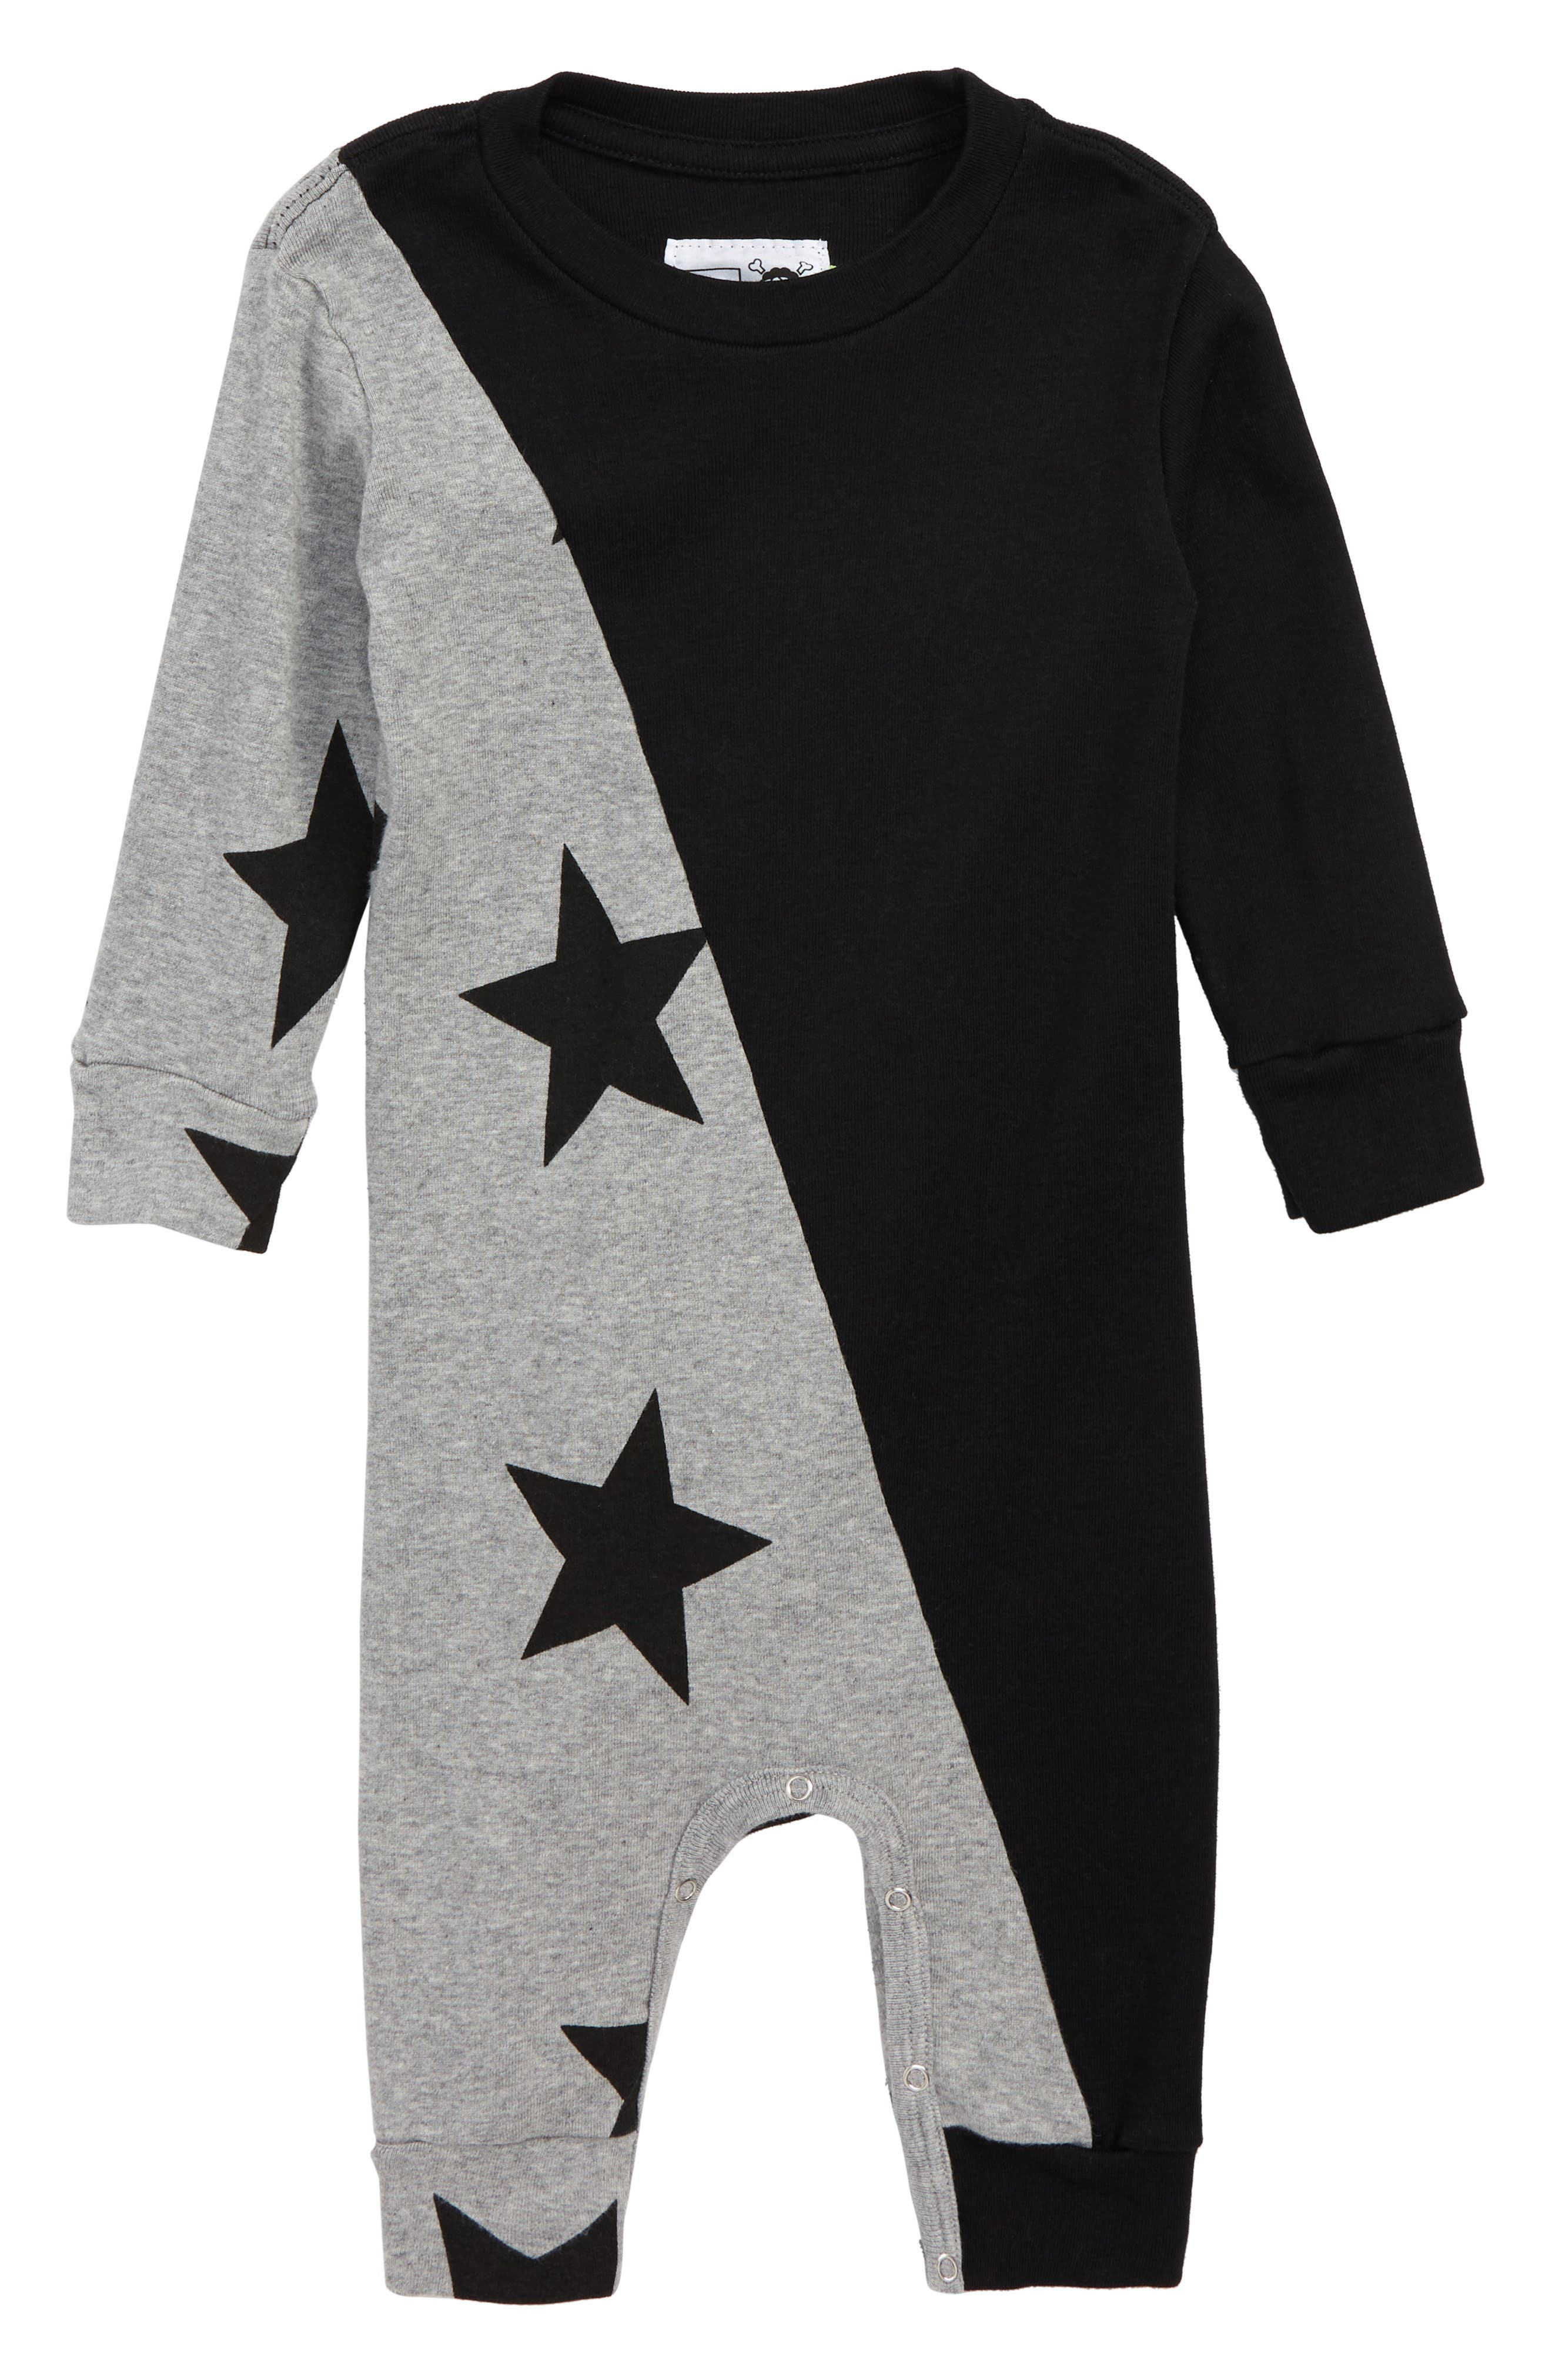 1/2 and 1/2 Star Romper,                             Main thumbnail 1, color,                             BLACK/ HEATHER GREY